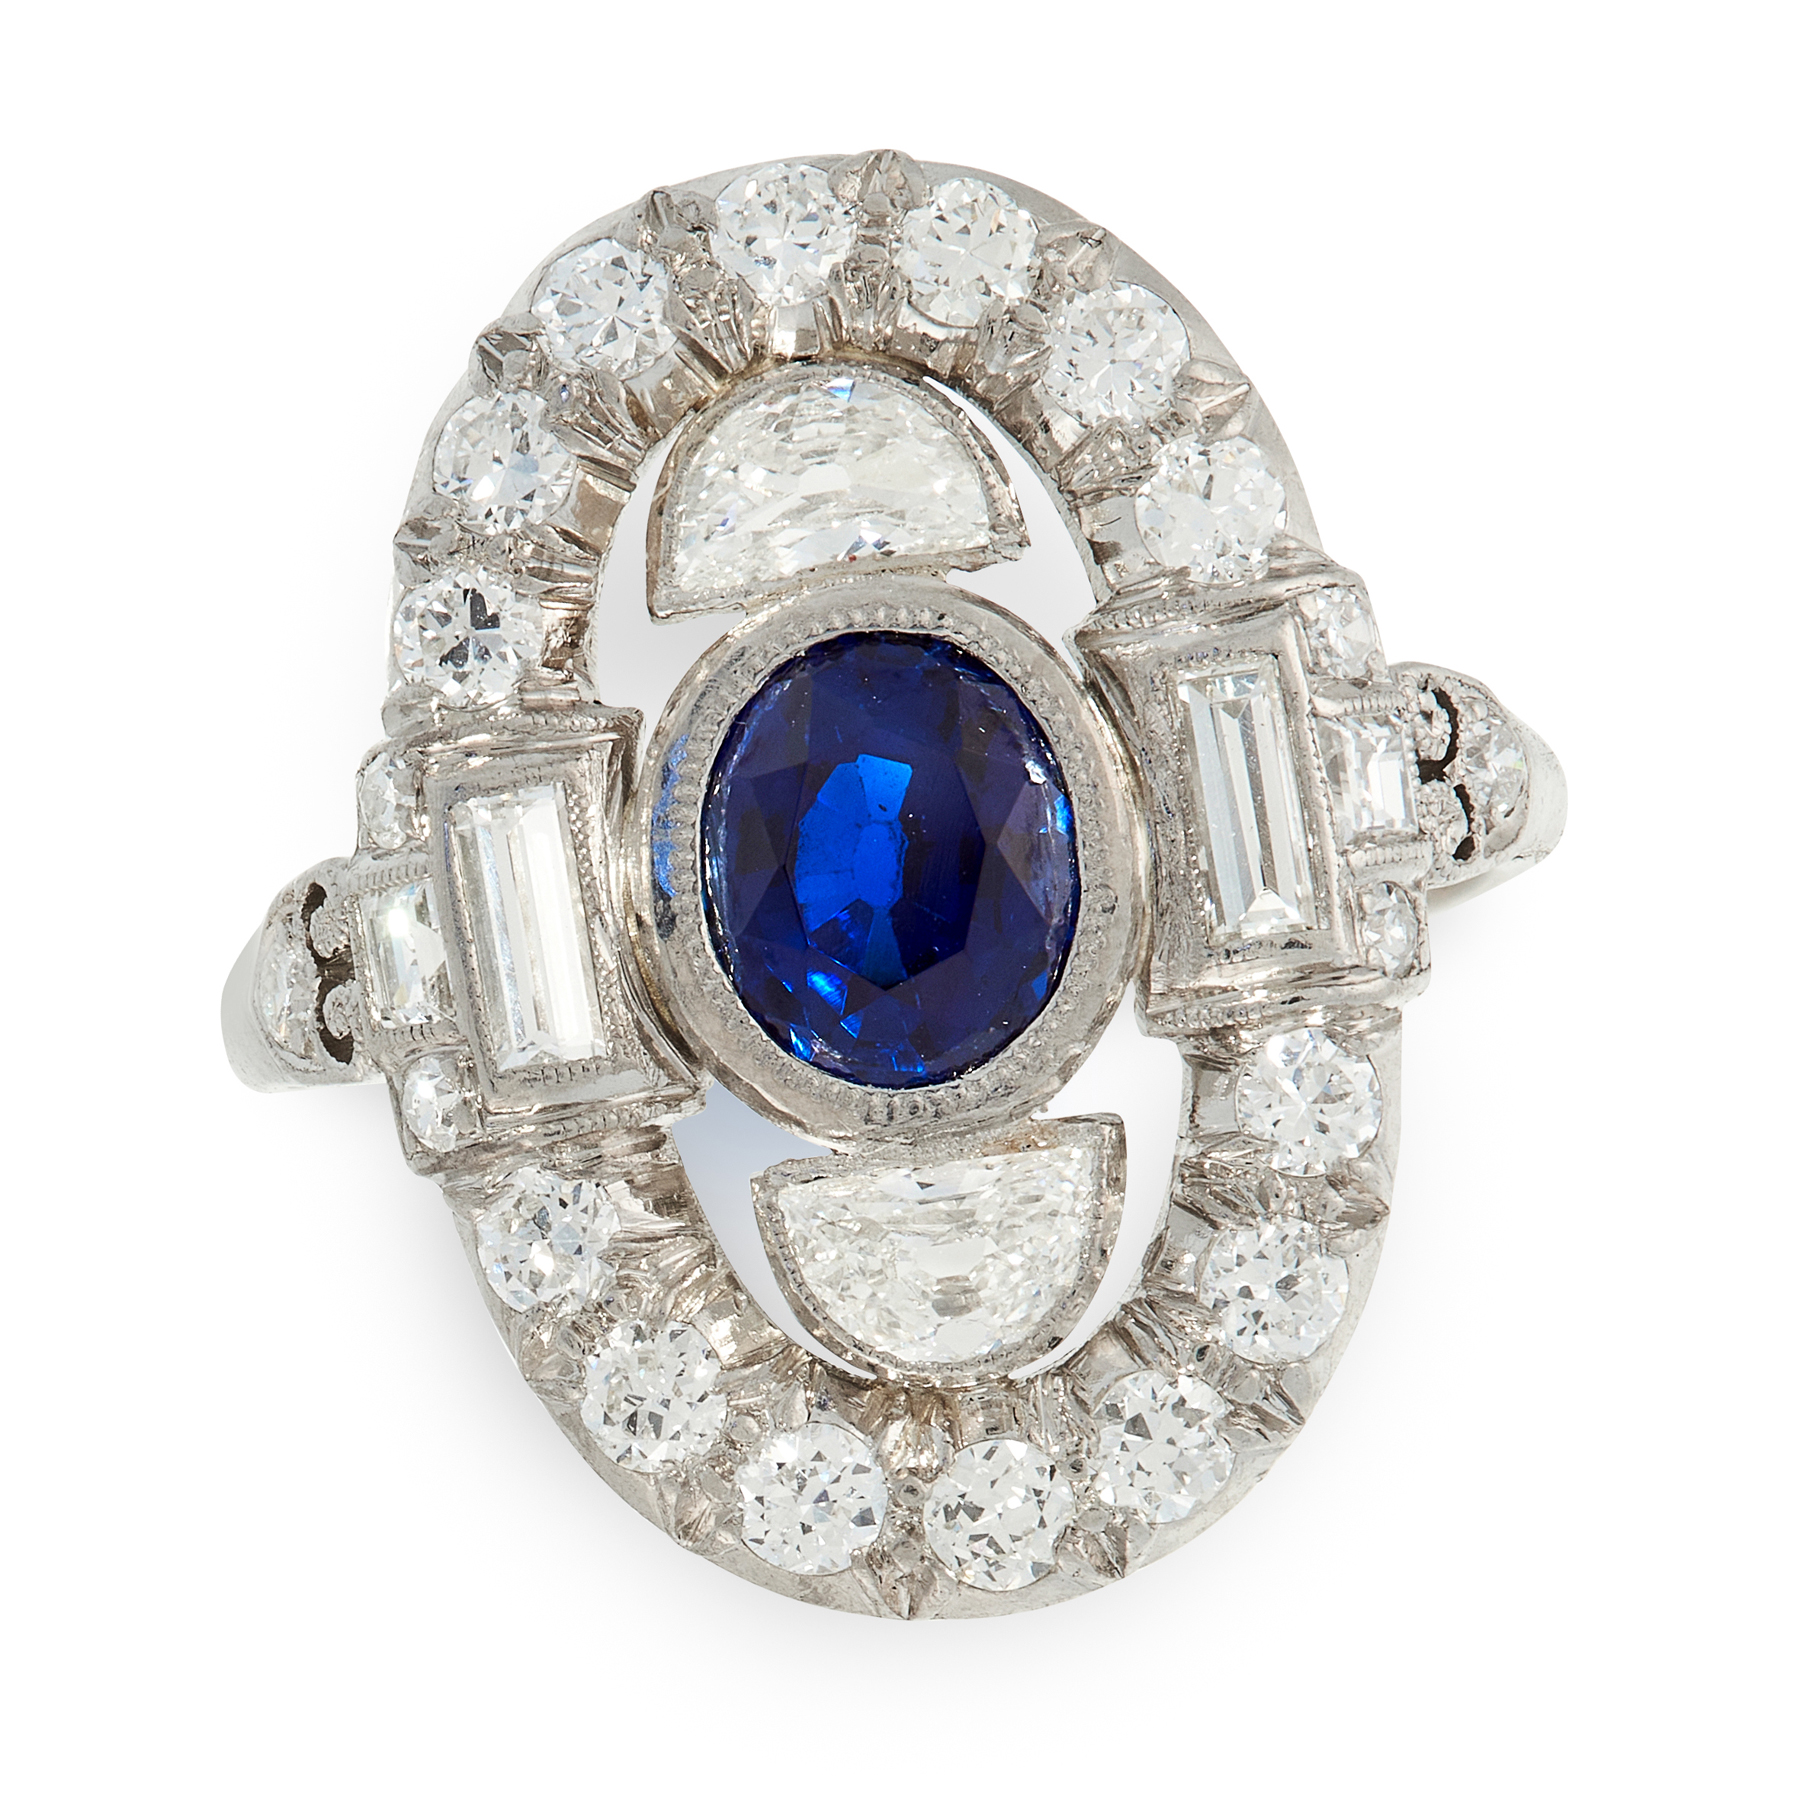 A SAPPHIRE AND DIAMOND RING, CIRCA 1950 POSSIBLY BY H STERN in platinum, set with an oval cut